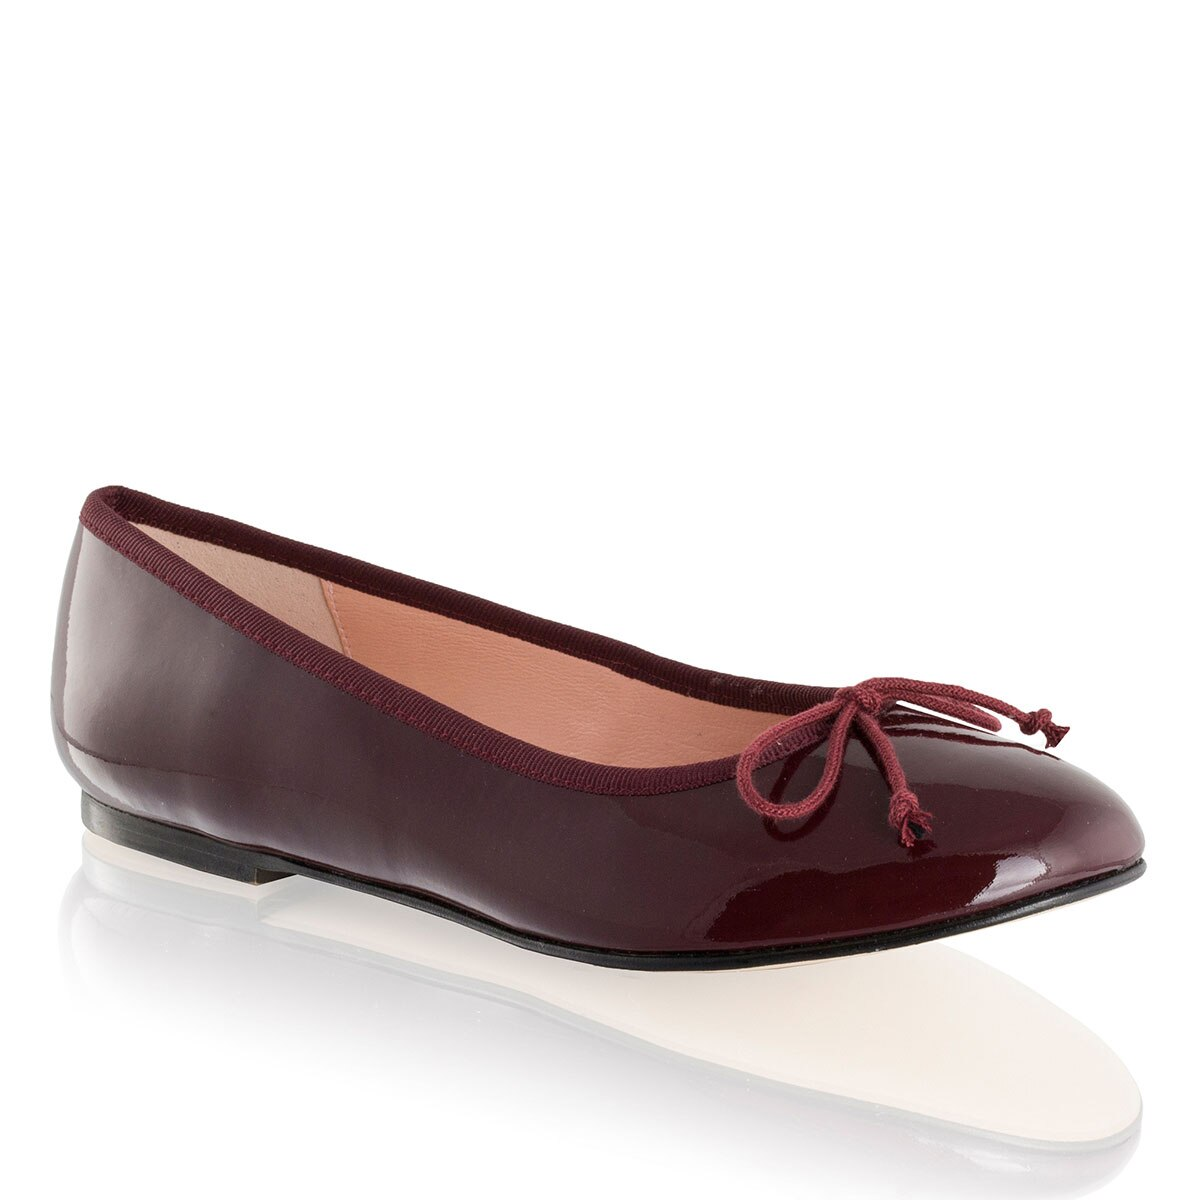 Russell and Bromley LA SCALA Ballerina Pump